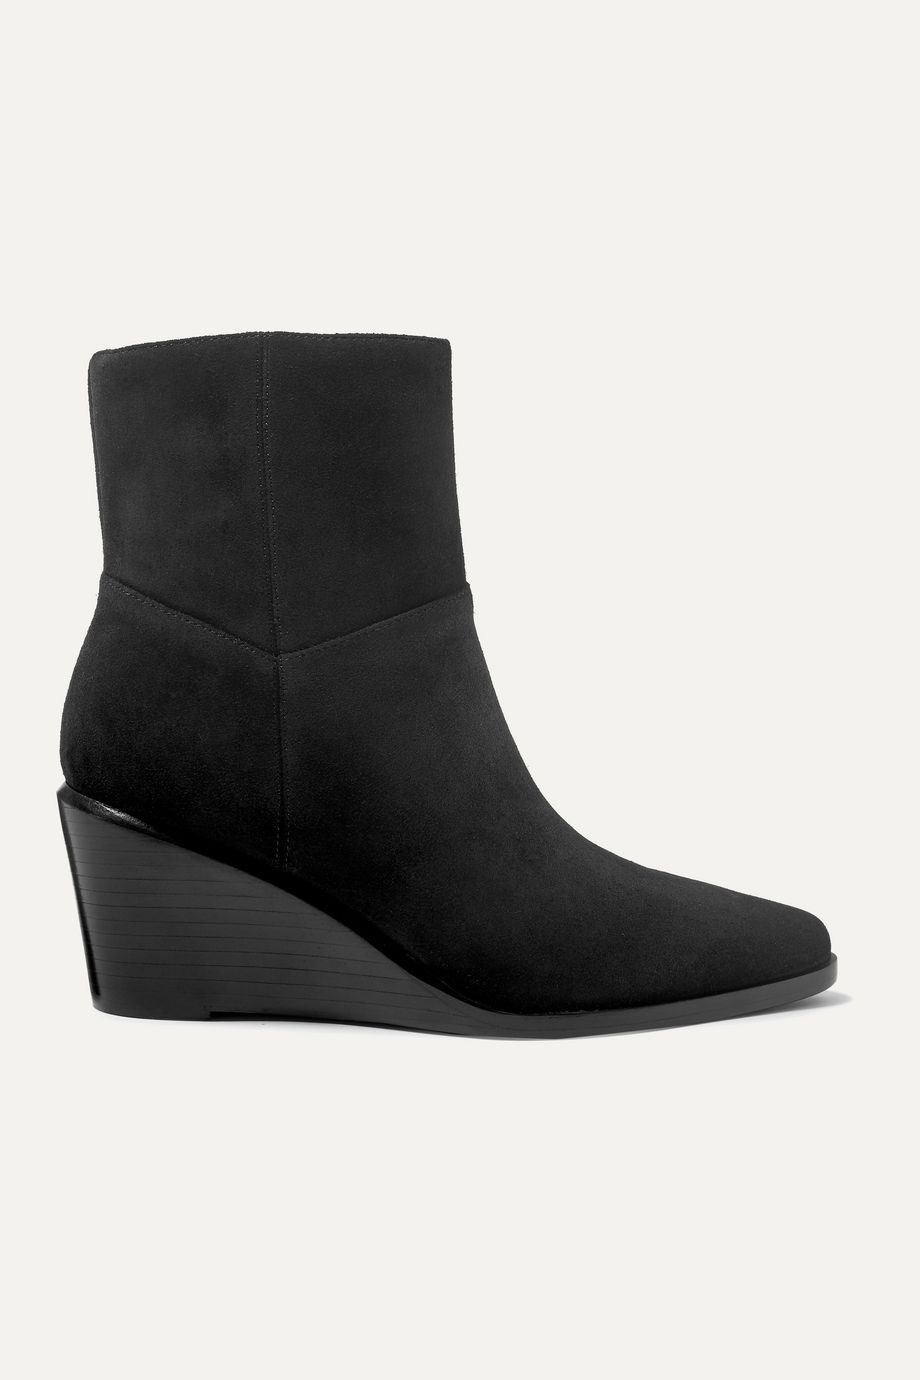 Vince Mavis suede wedge ankle boots